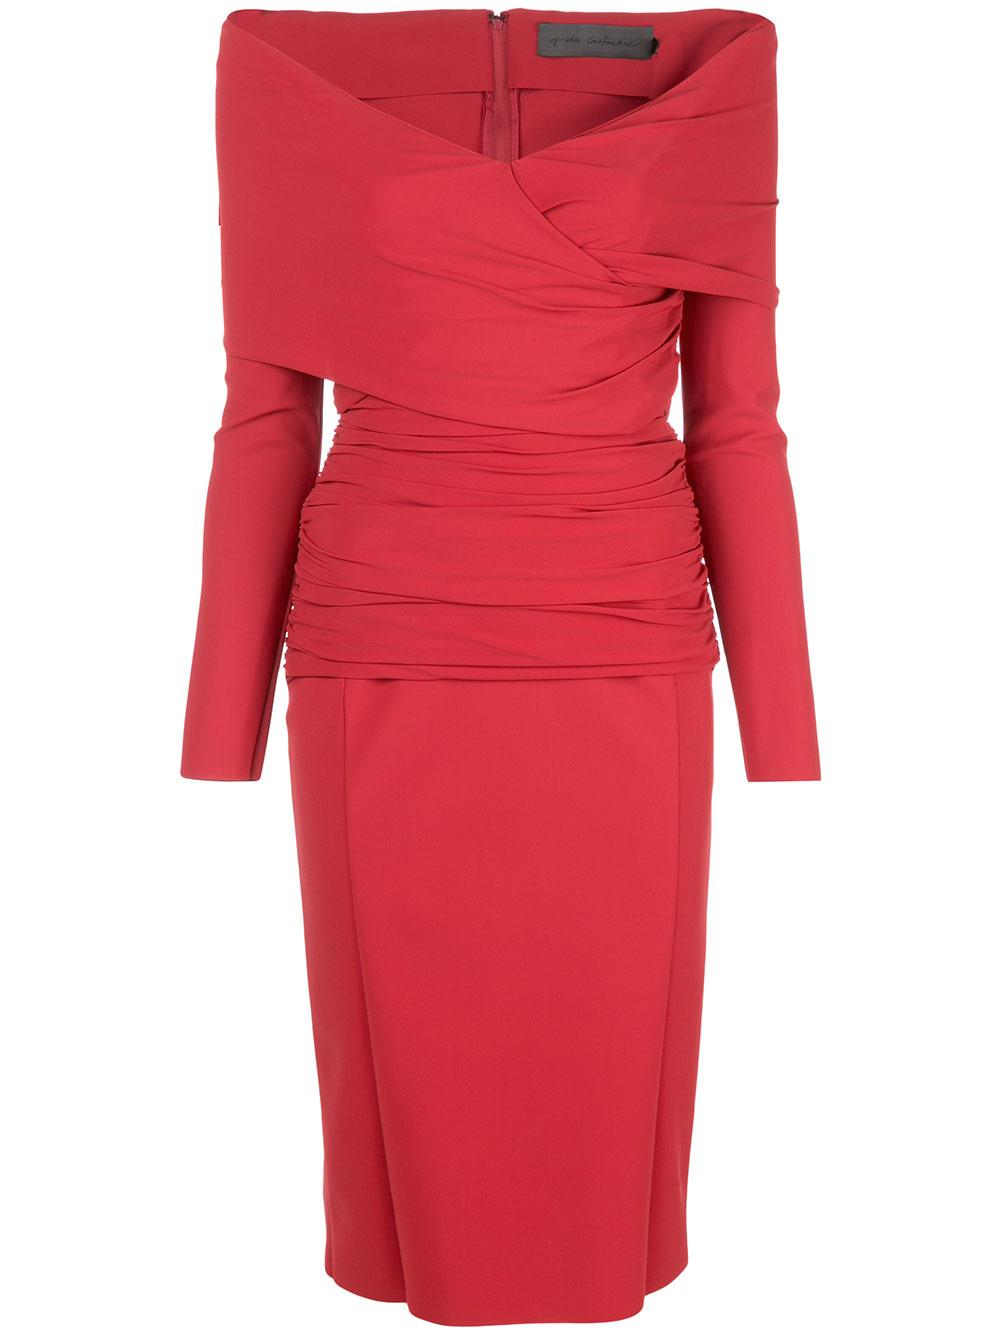 Long Sleeve Off The Shoulder Ruched Sheath Dress Item # FORTUNATUS